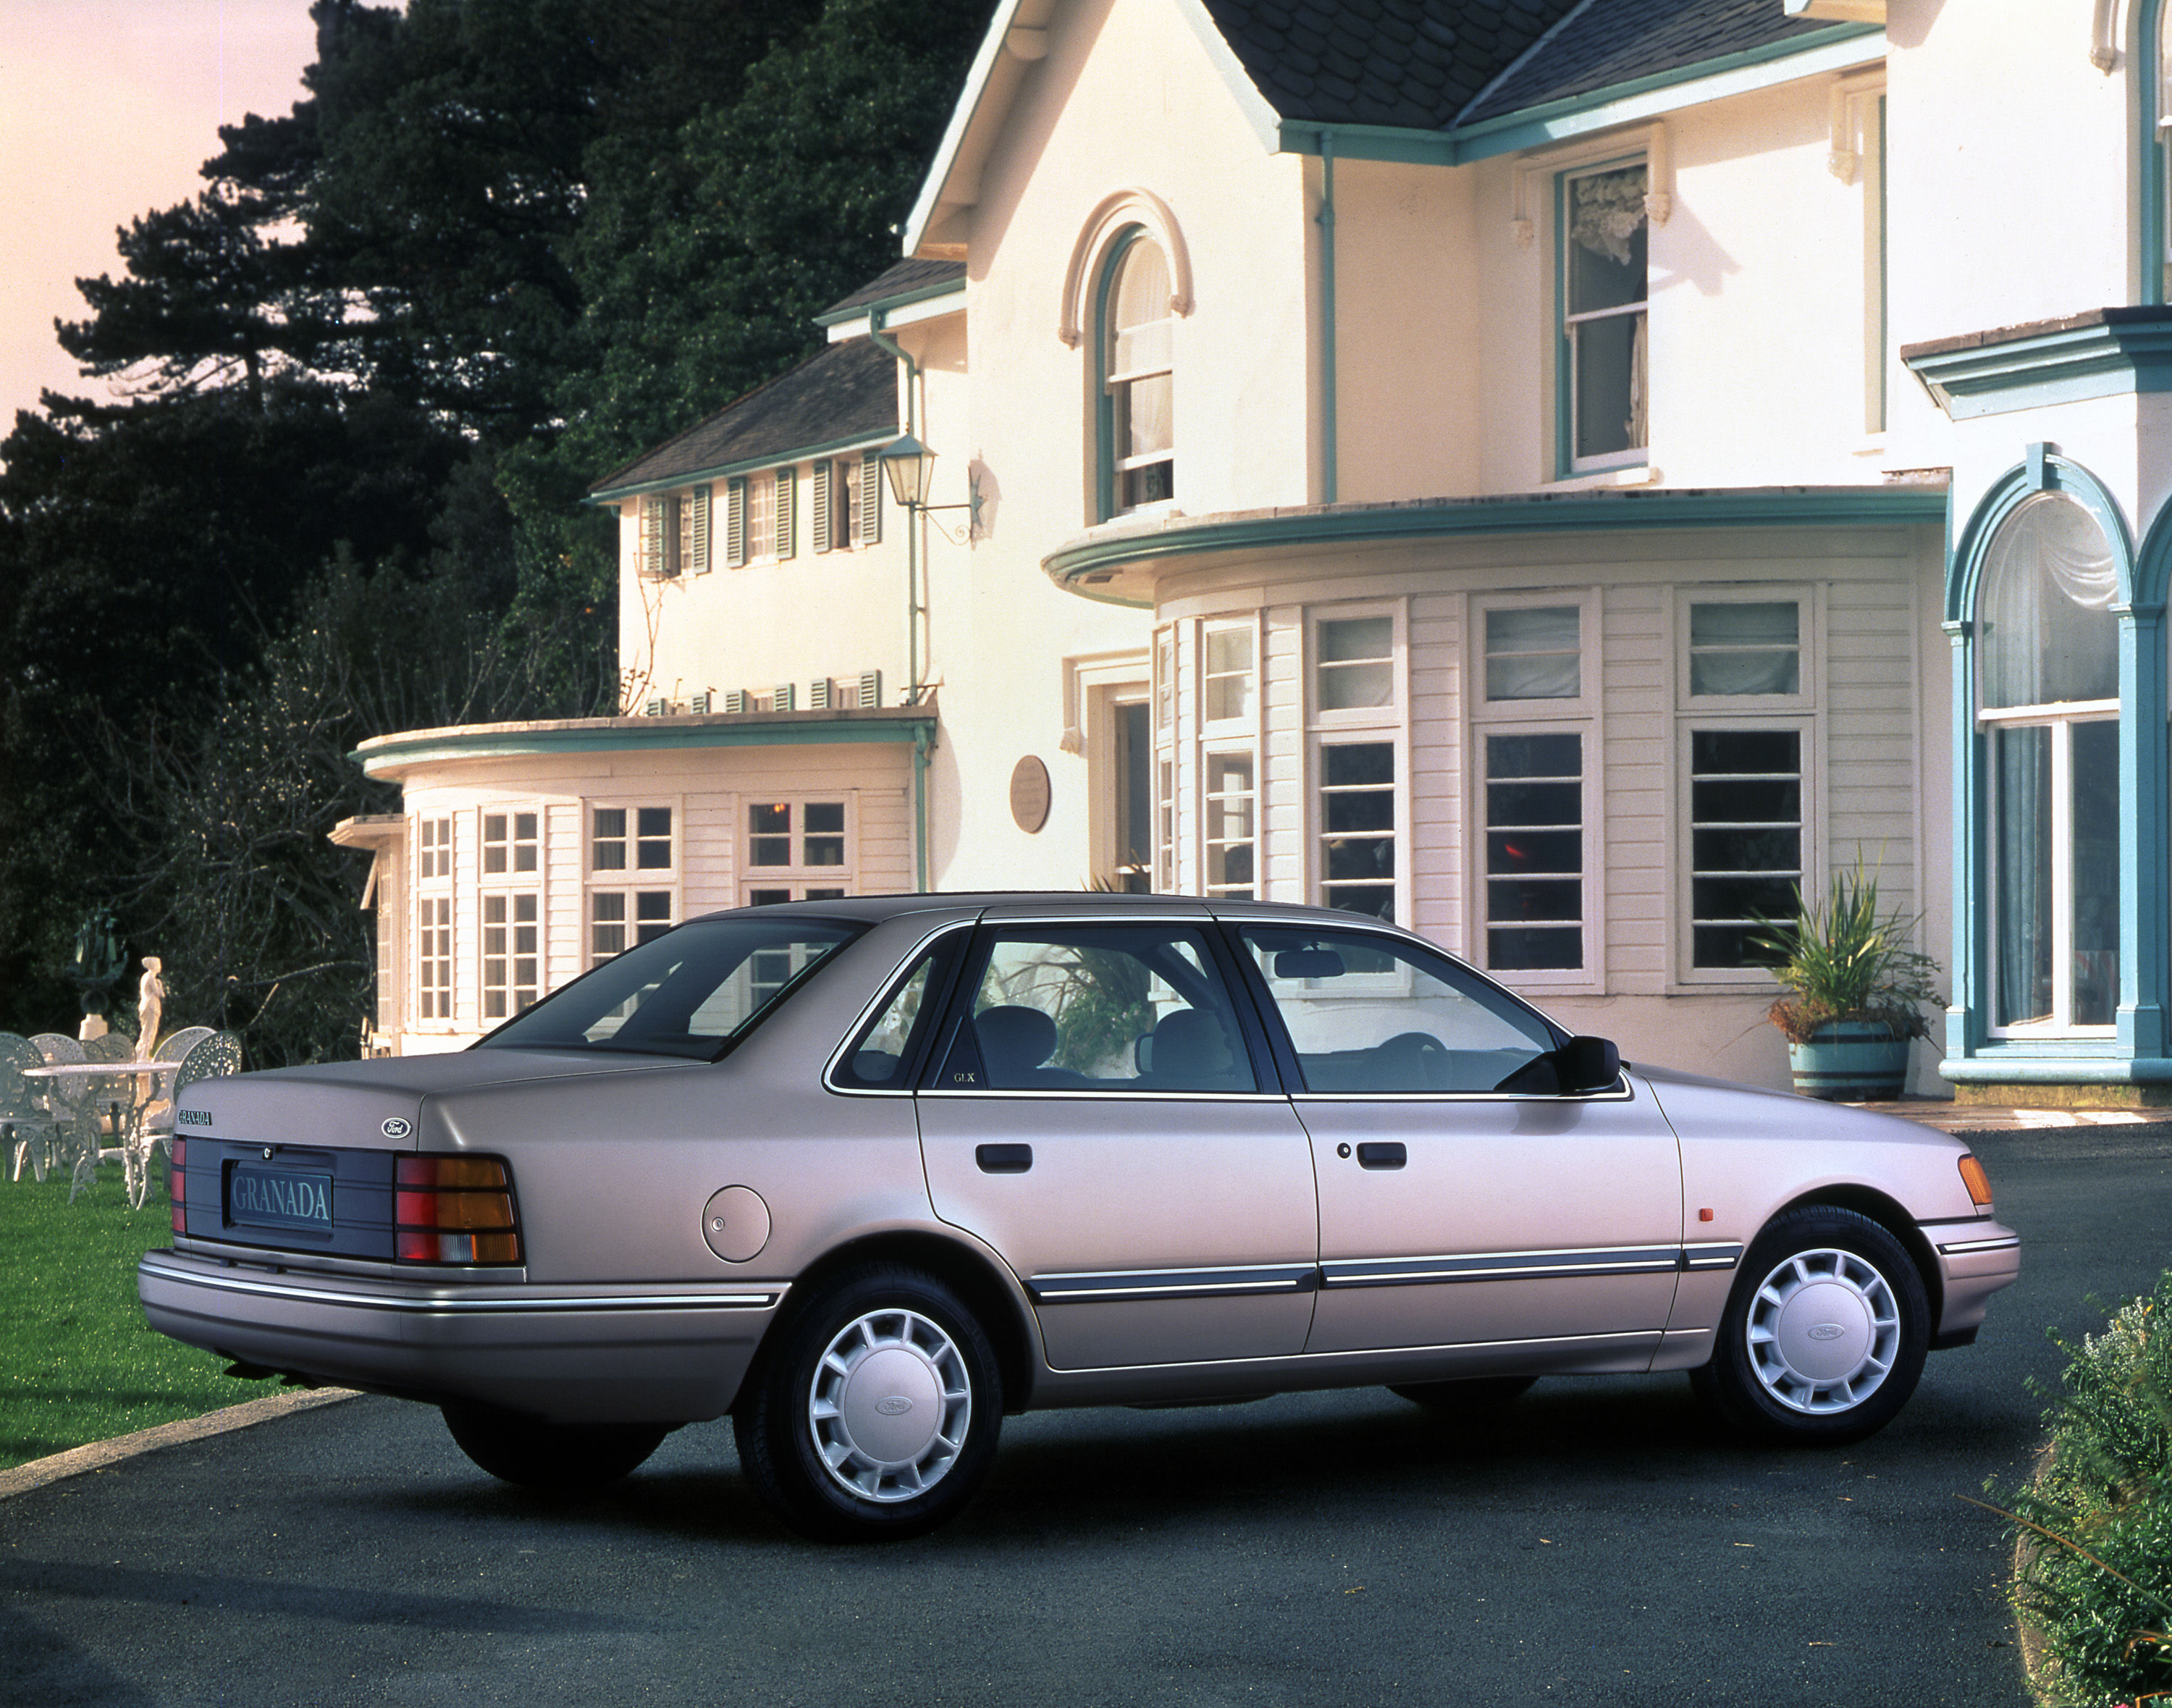 ford scorpio i wagon (gge) 1990 pictures #15